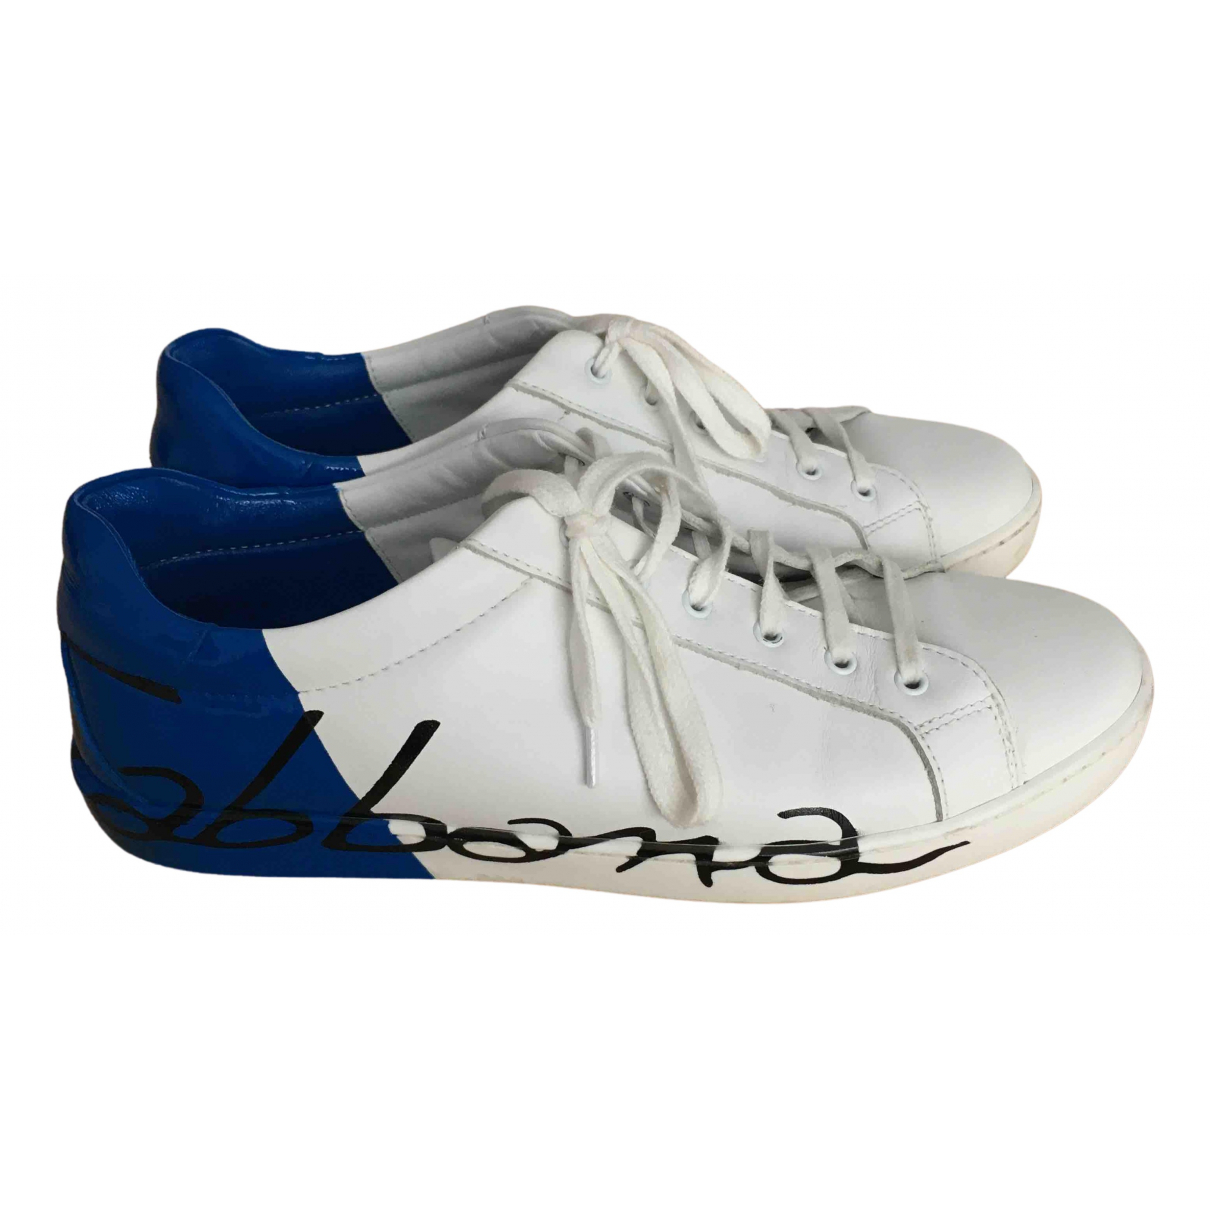 Dolce & Gabbana N White Leather Trainers for Kids 38 FR